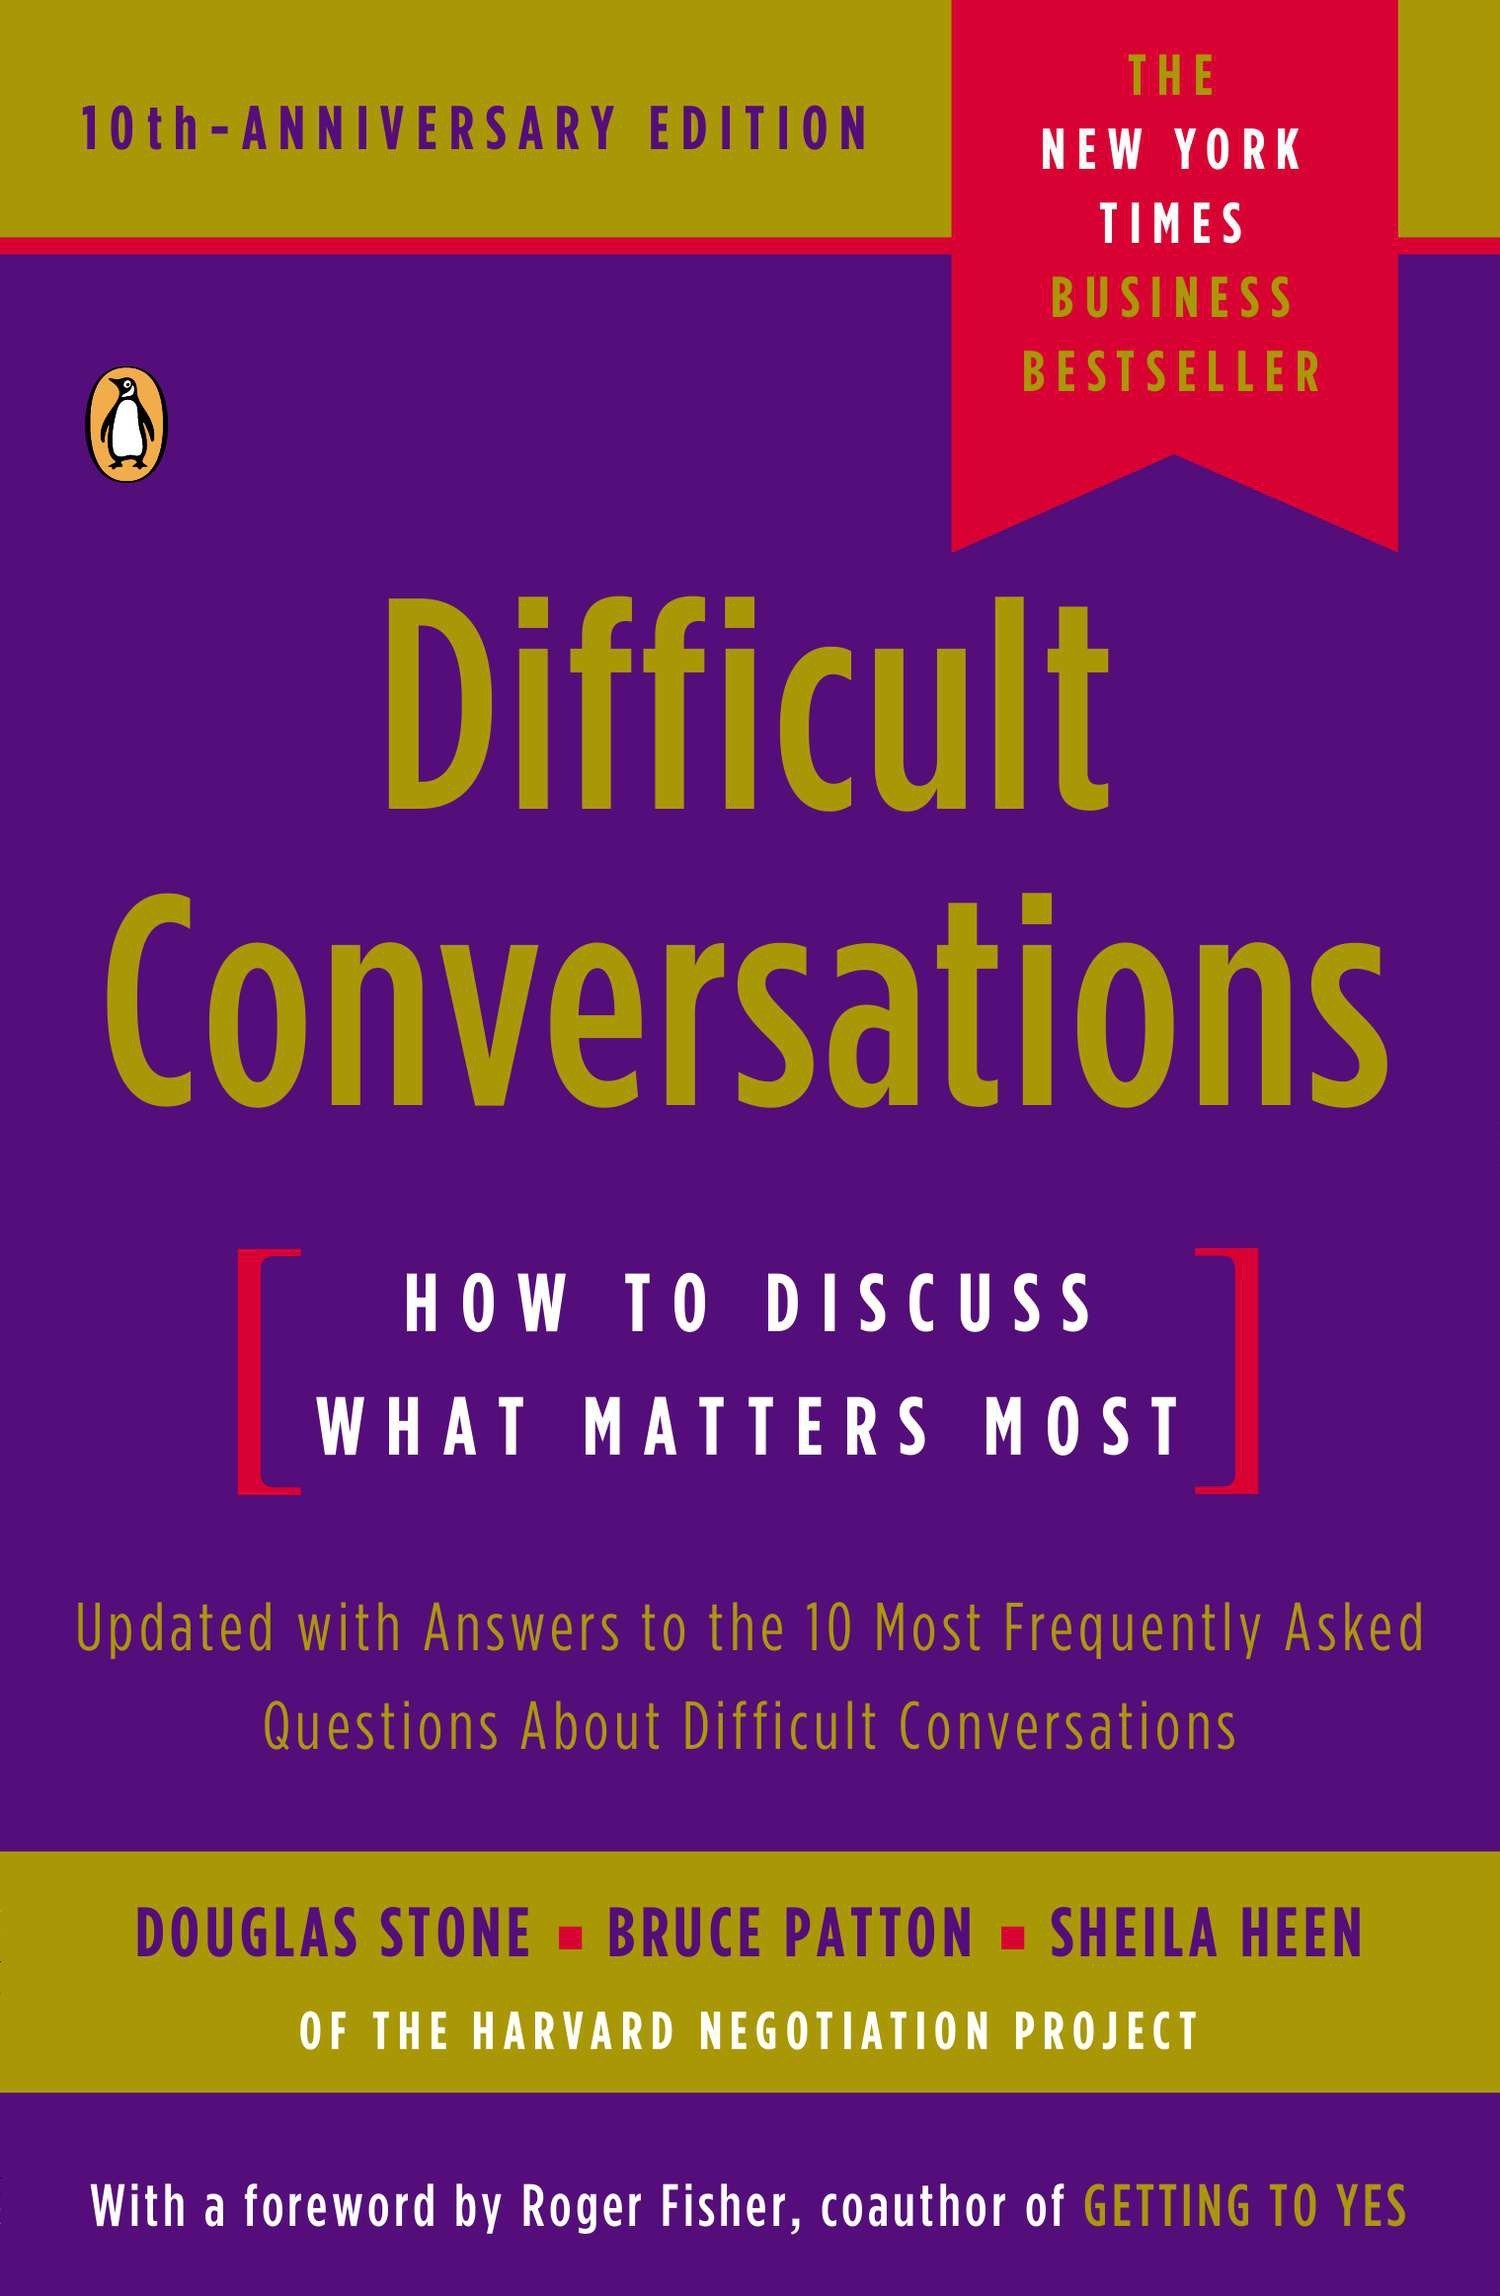 Difficult Conversations: How to Discuss What Matters Most: Stone, Douglas,  Patton, Bruce, Heen, Sheila, Fisher, Roger: 9780143118442: Amazon.com: Books